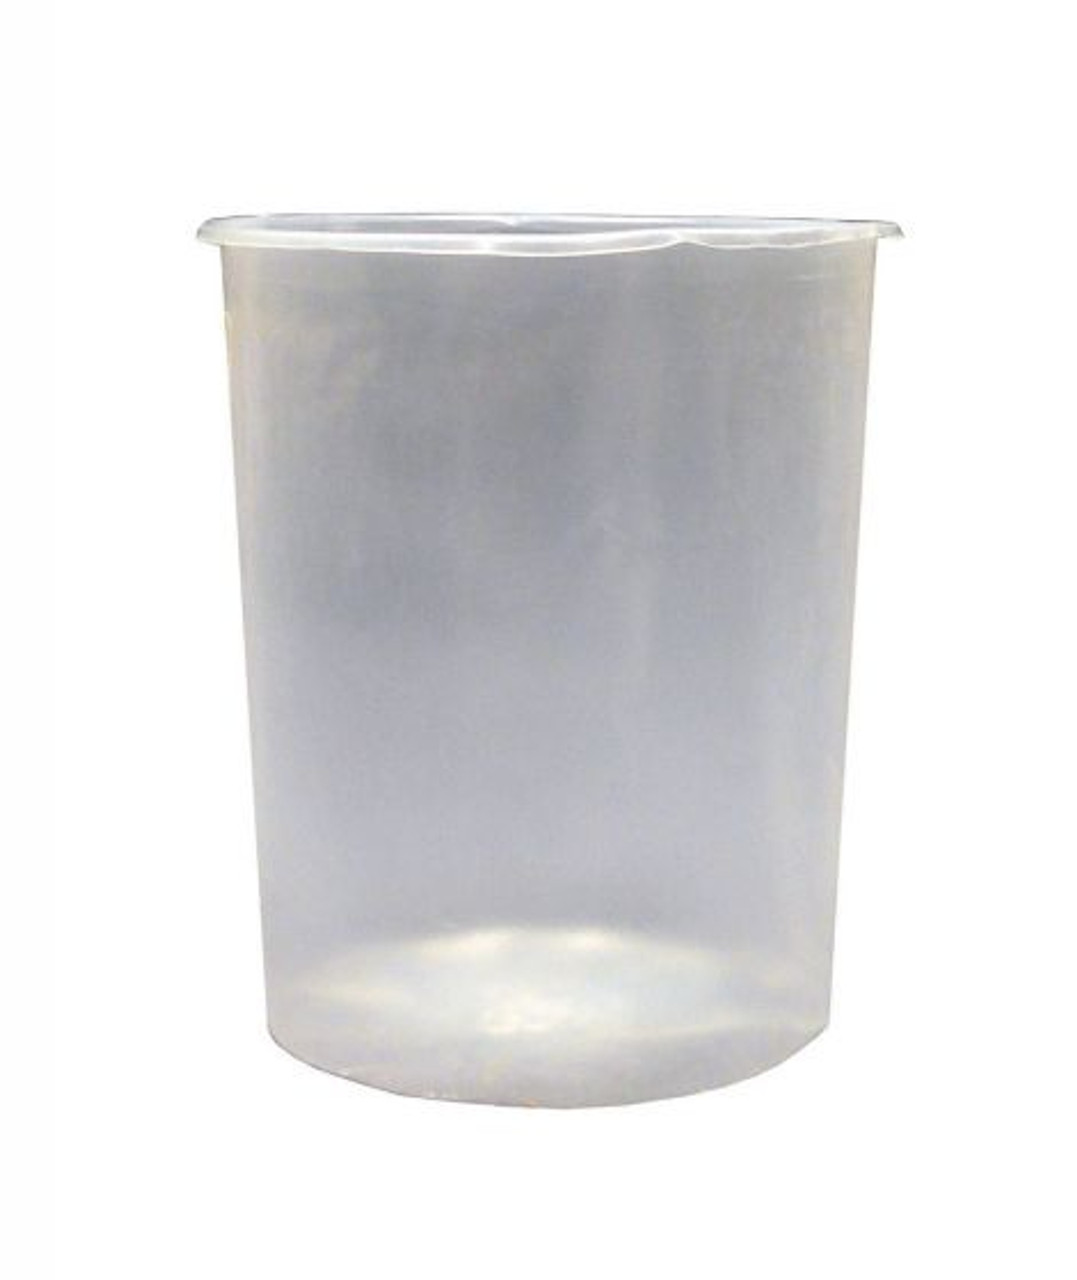 5 GALLON LDPE TAPERED PAIL LINER 14 INCHES HIGH